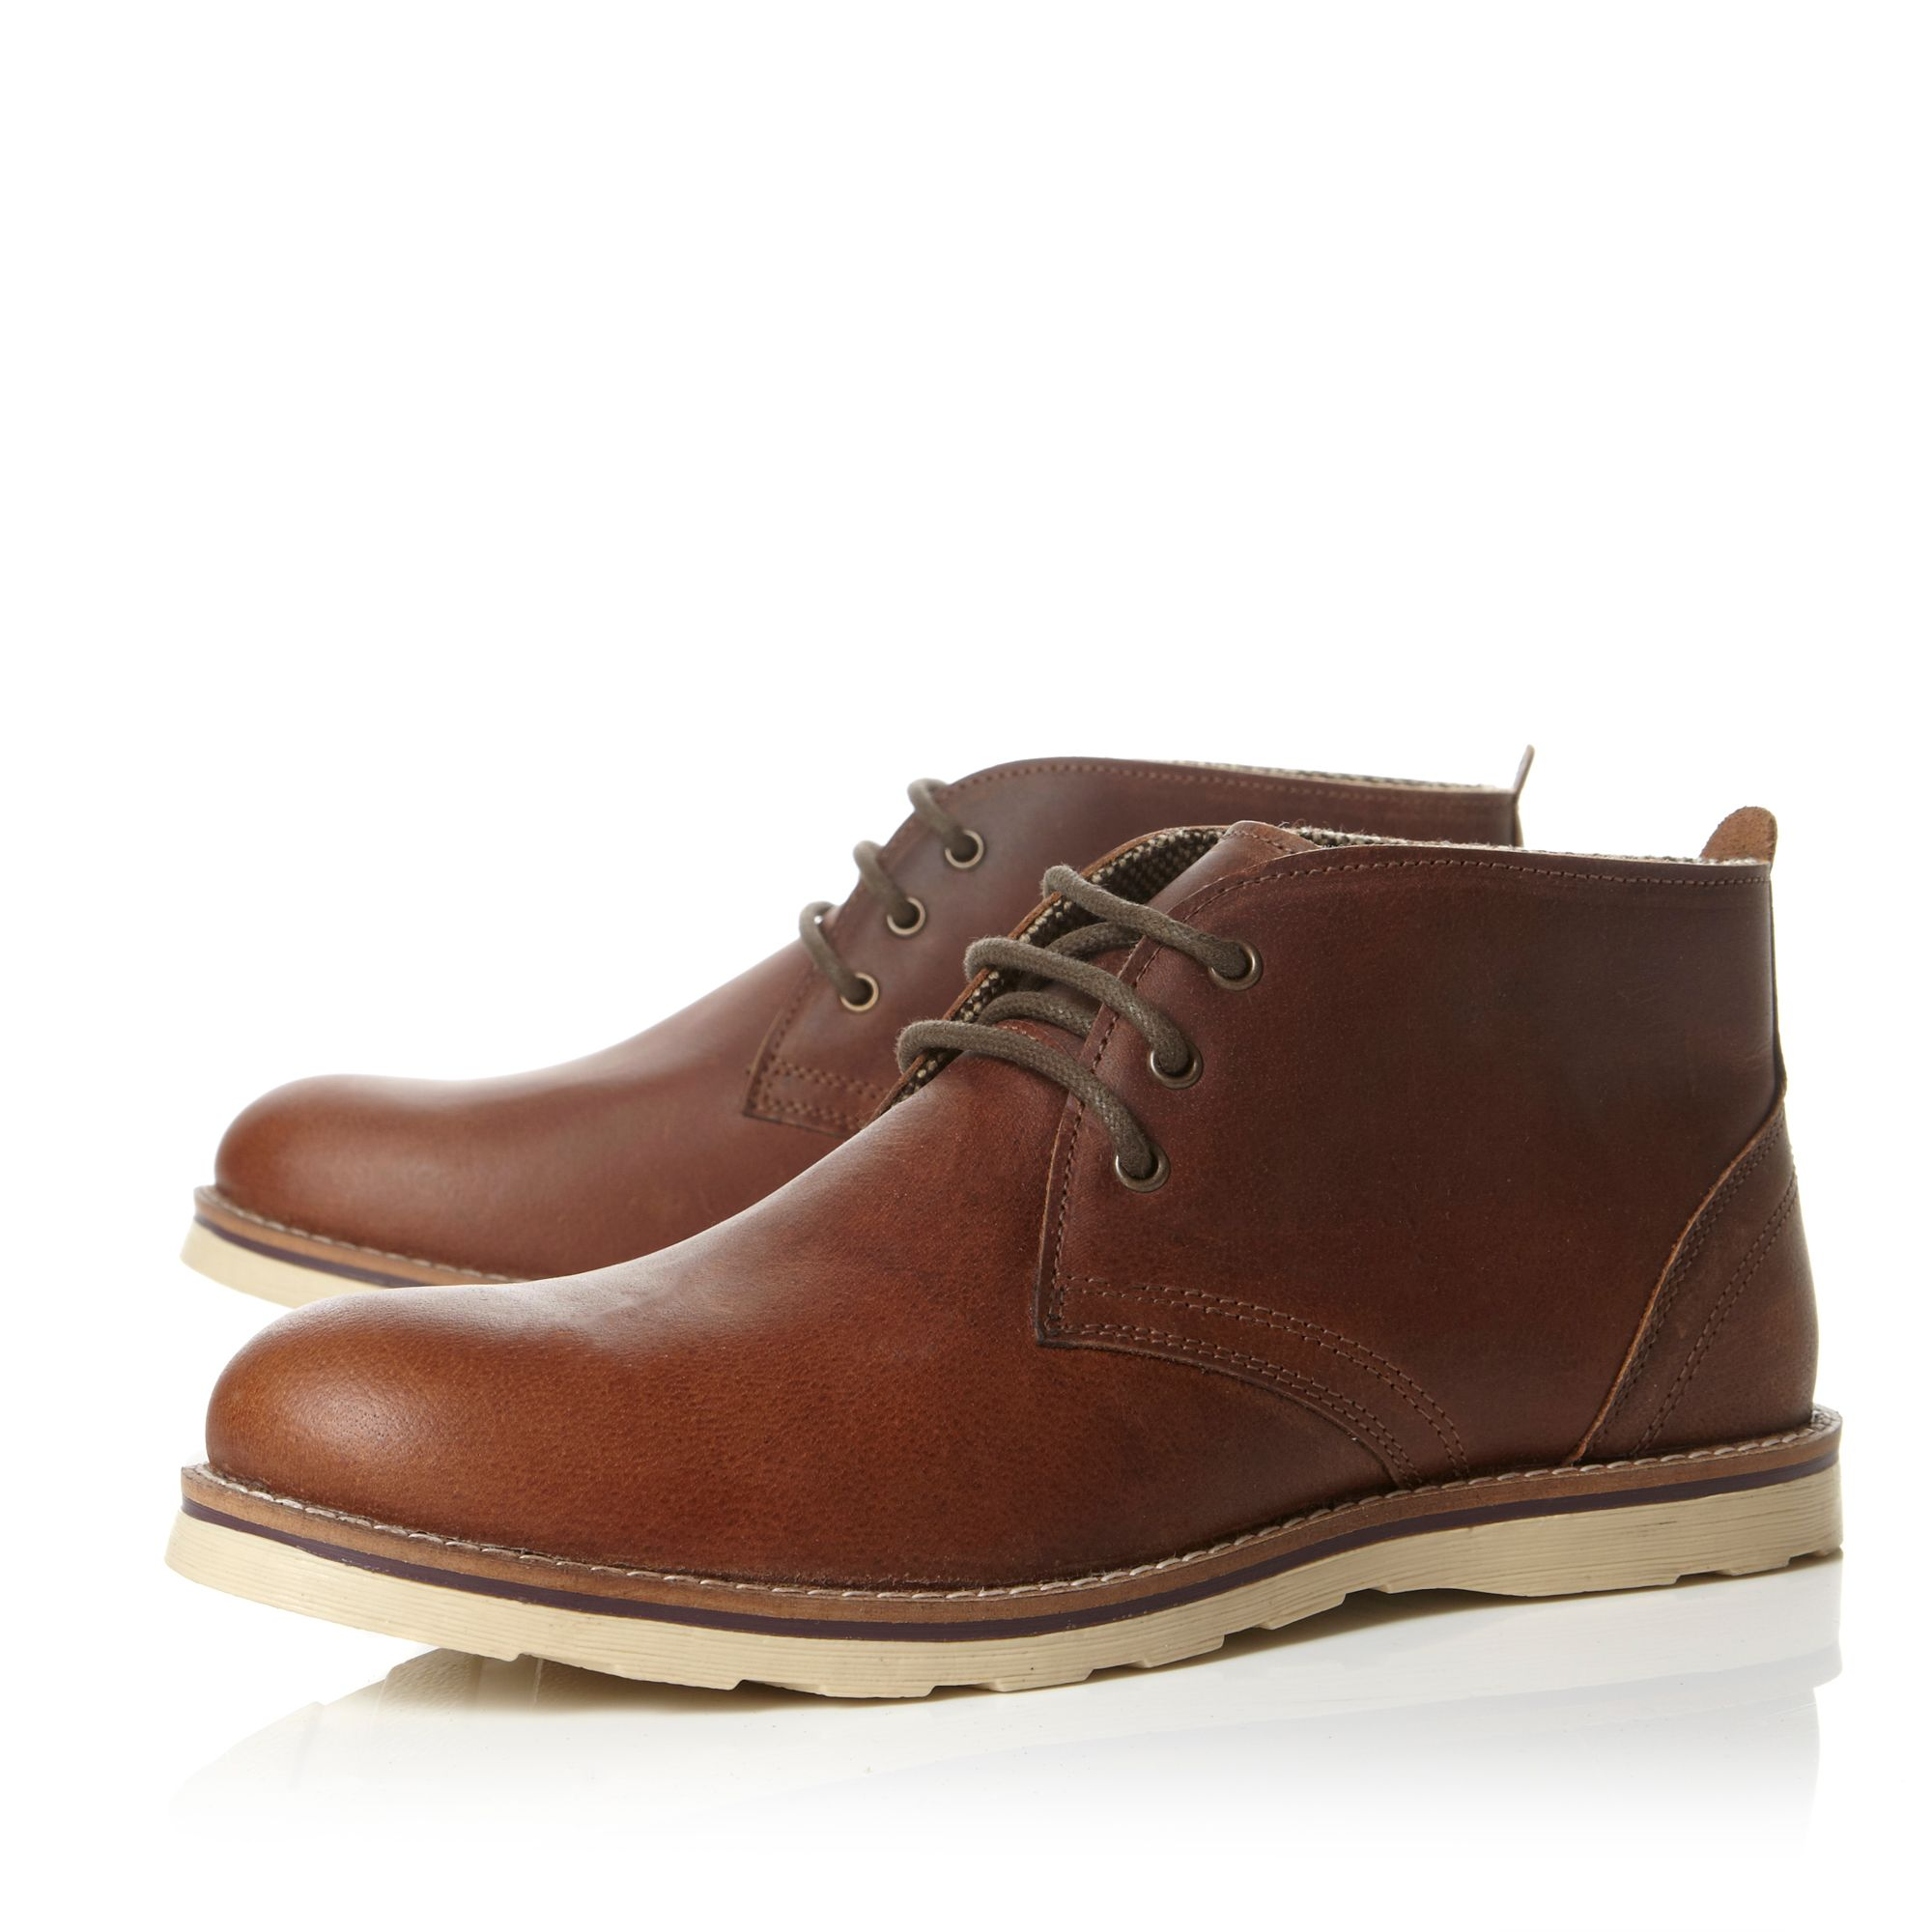 Howick Henly casual boots